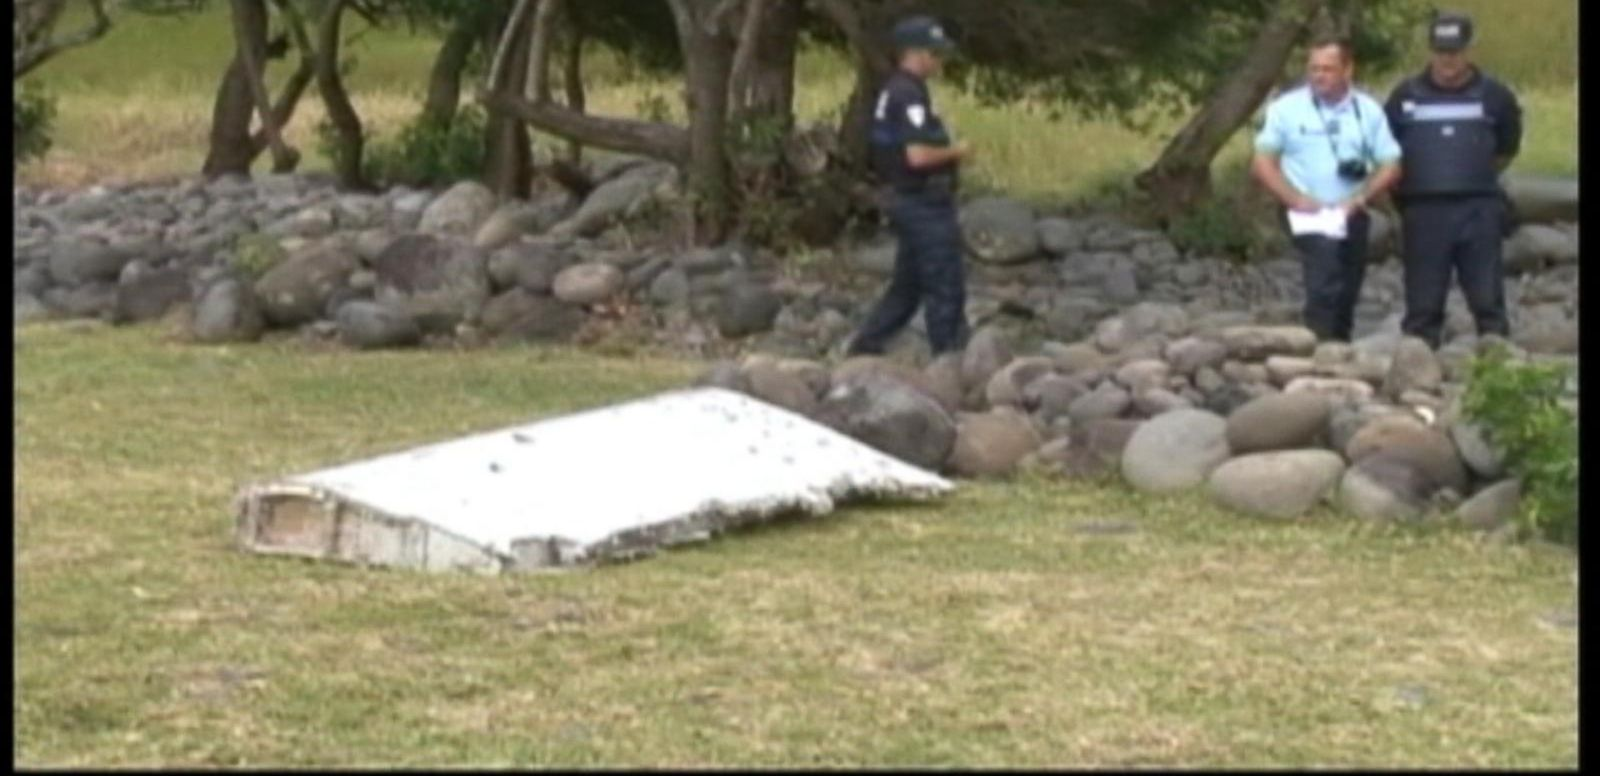 Investigators looking into new clues in the mystery of Malaysia Airlines MH370 after a piece of wreckage and luggage washed ashore. ABC News' Kenneth Moton and Tom Haeuter contribute.